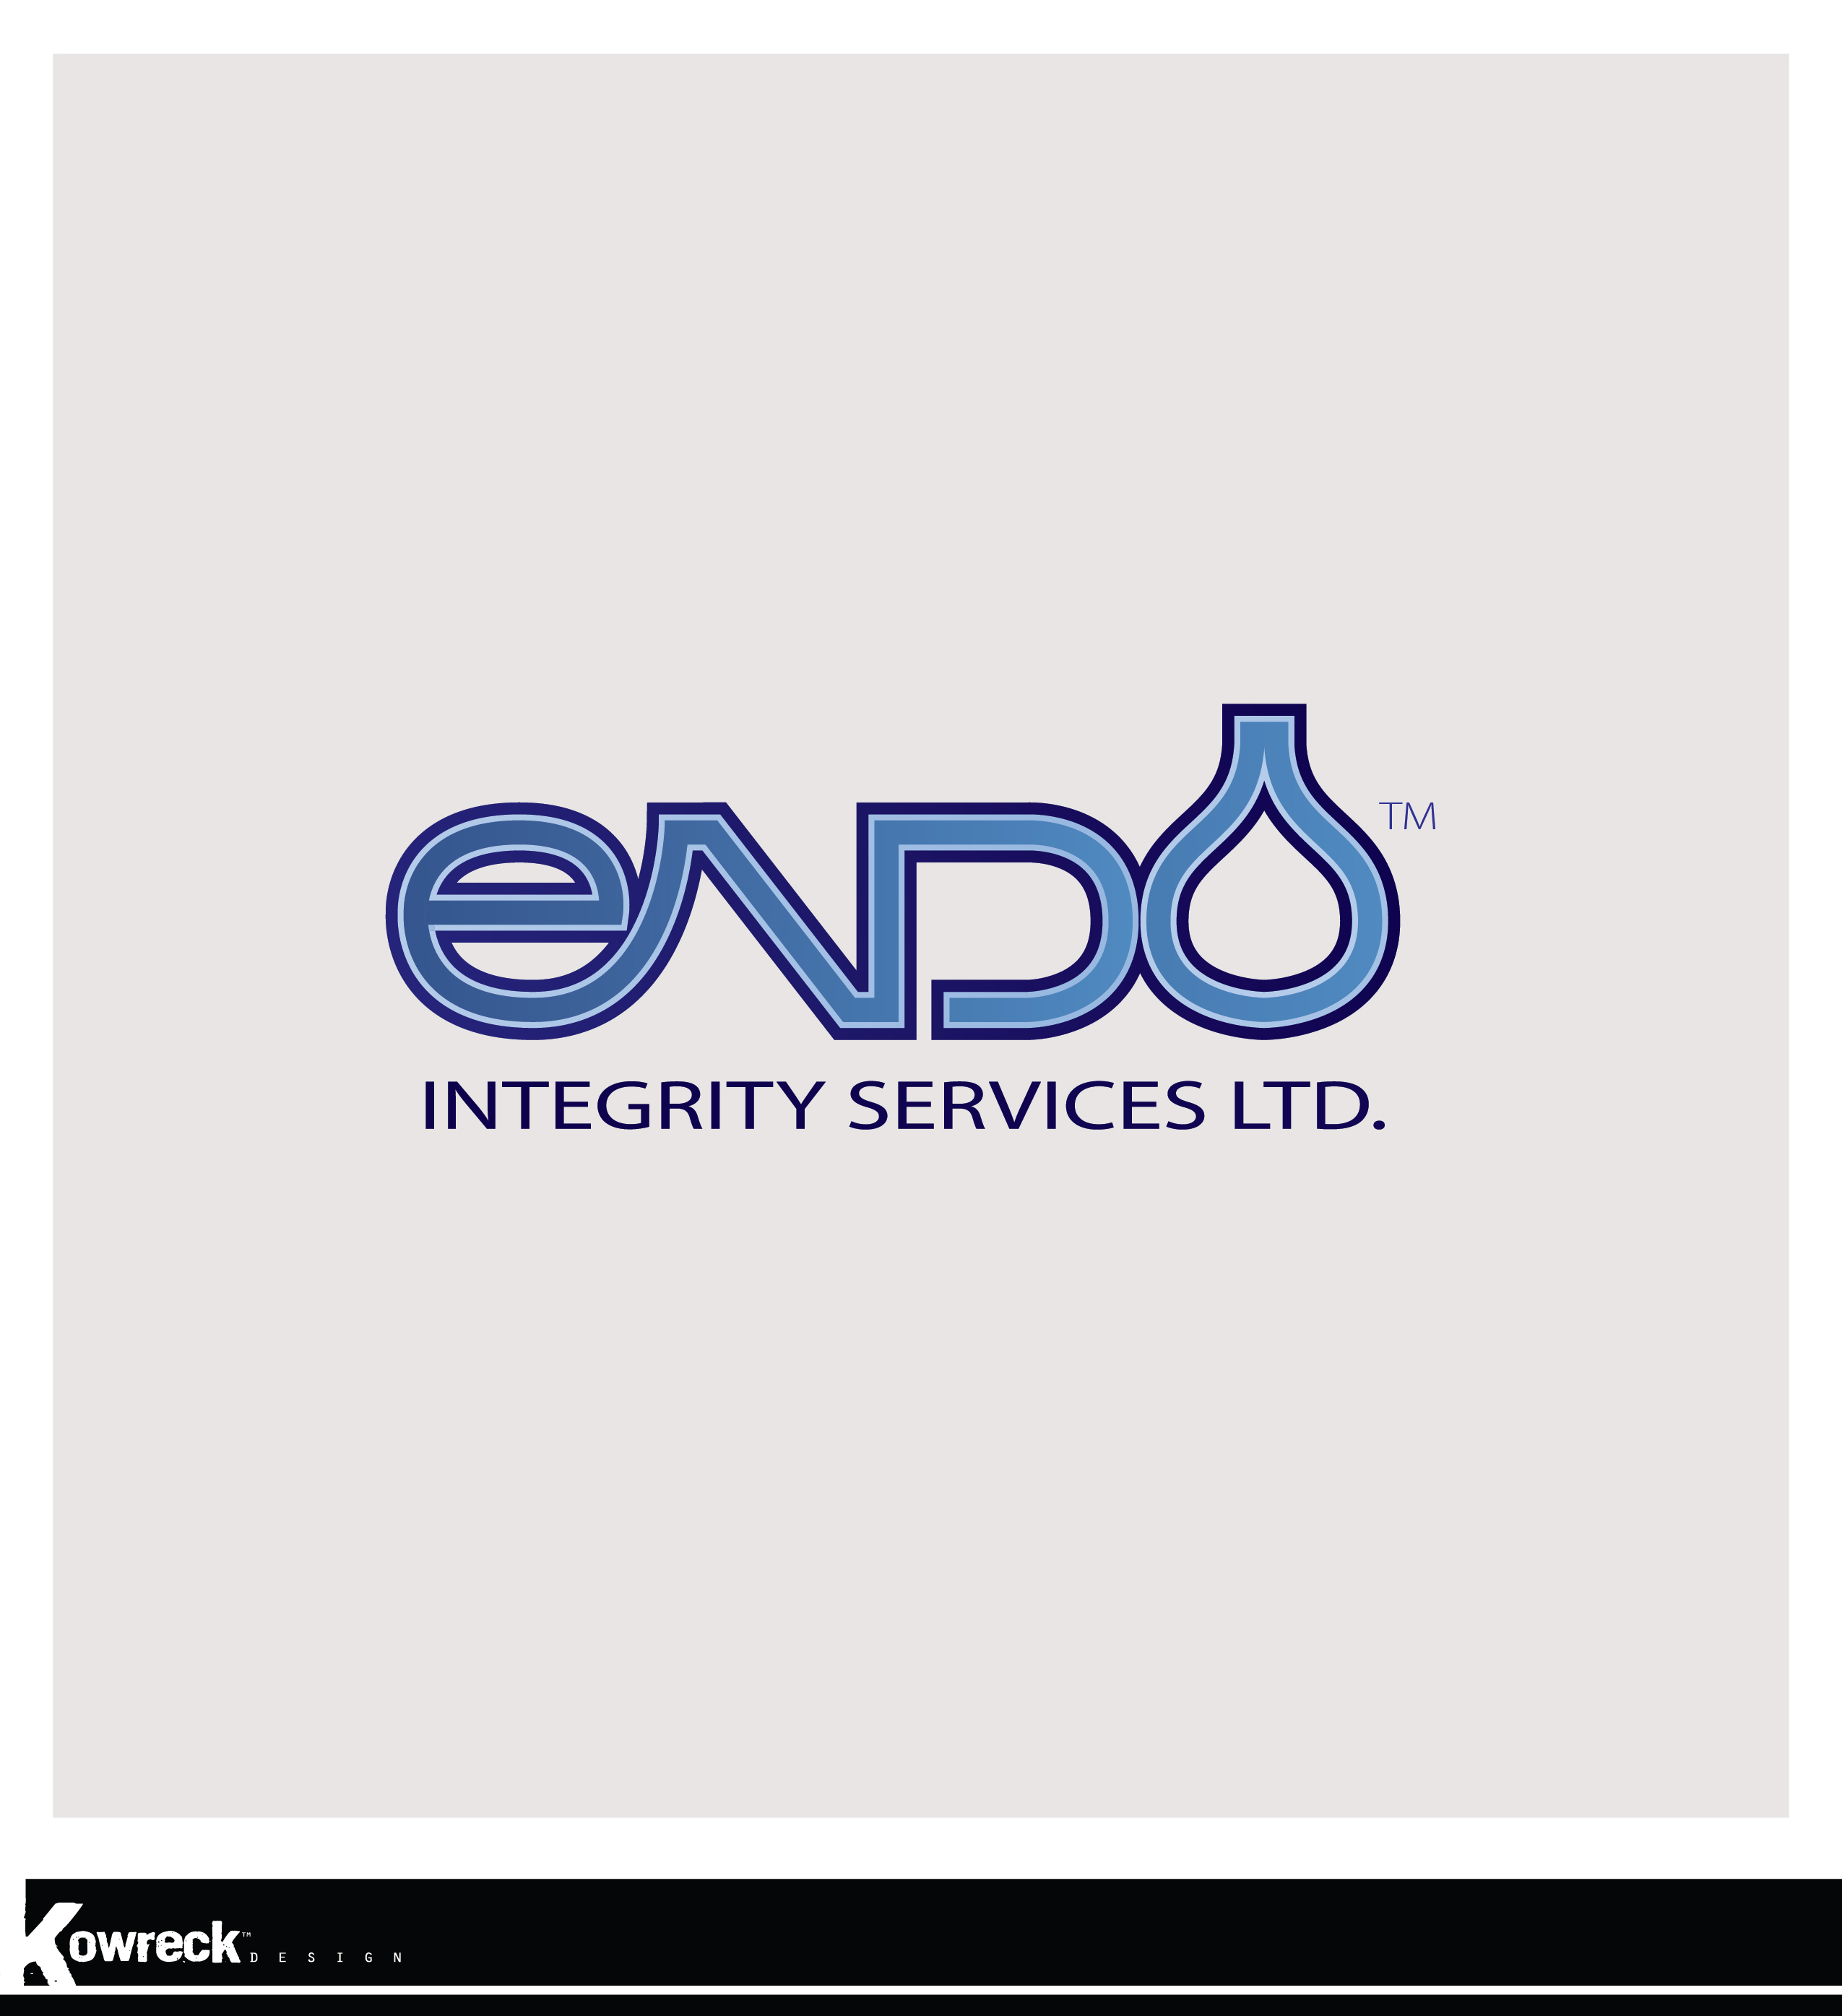 Logo Design by kowreck - Entry No. 13 in the Logo Design Contest New Logo Design for ENDO Integrity Services Ltd..